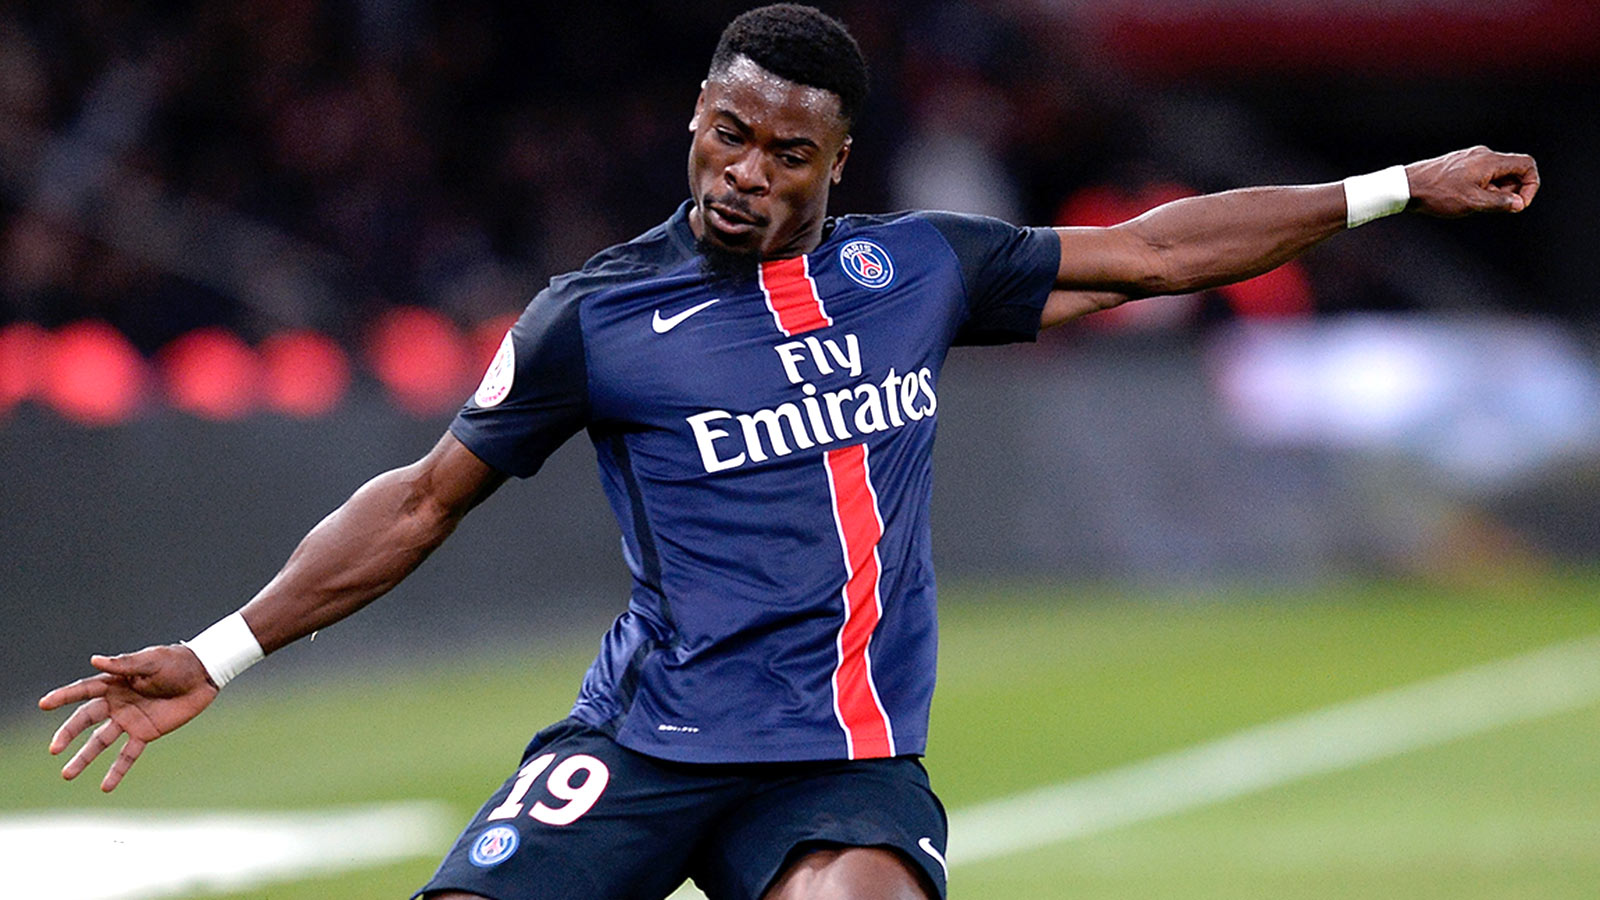 Suspended Aurier allowed to return to PSG squad next month